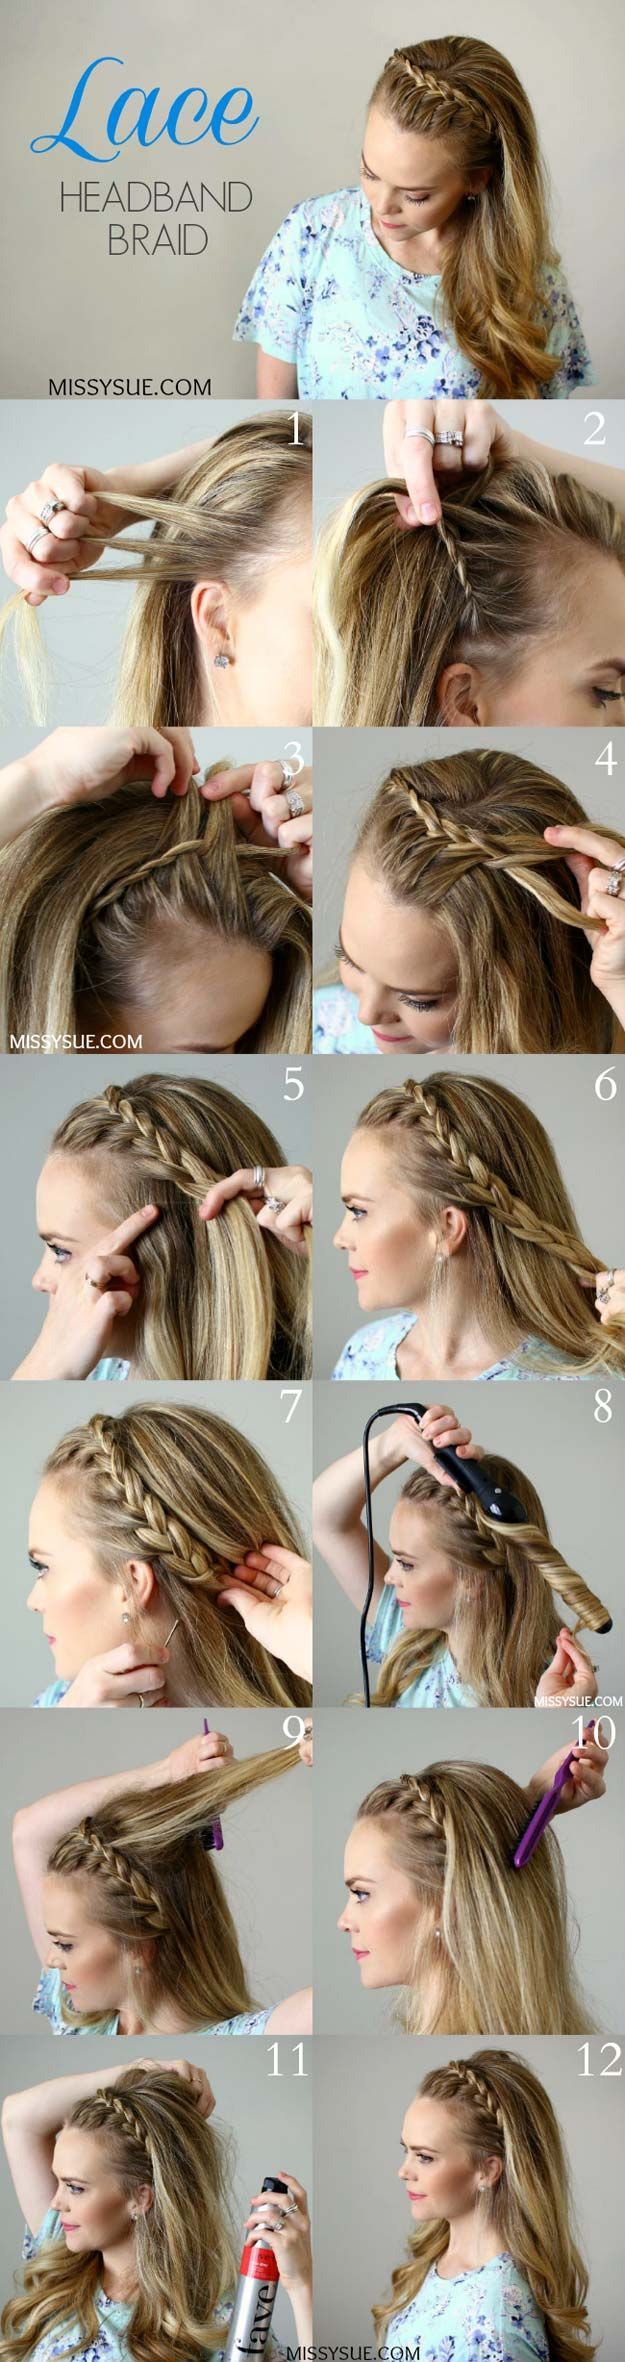 40 Of The Best Cute Hair Braiding Tutorials Lace Headbandsheadband  Braidsfrench